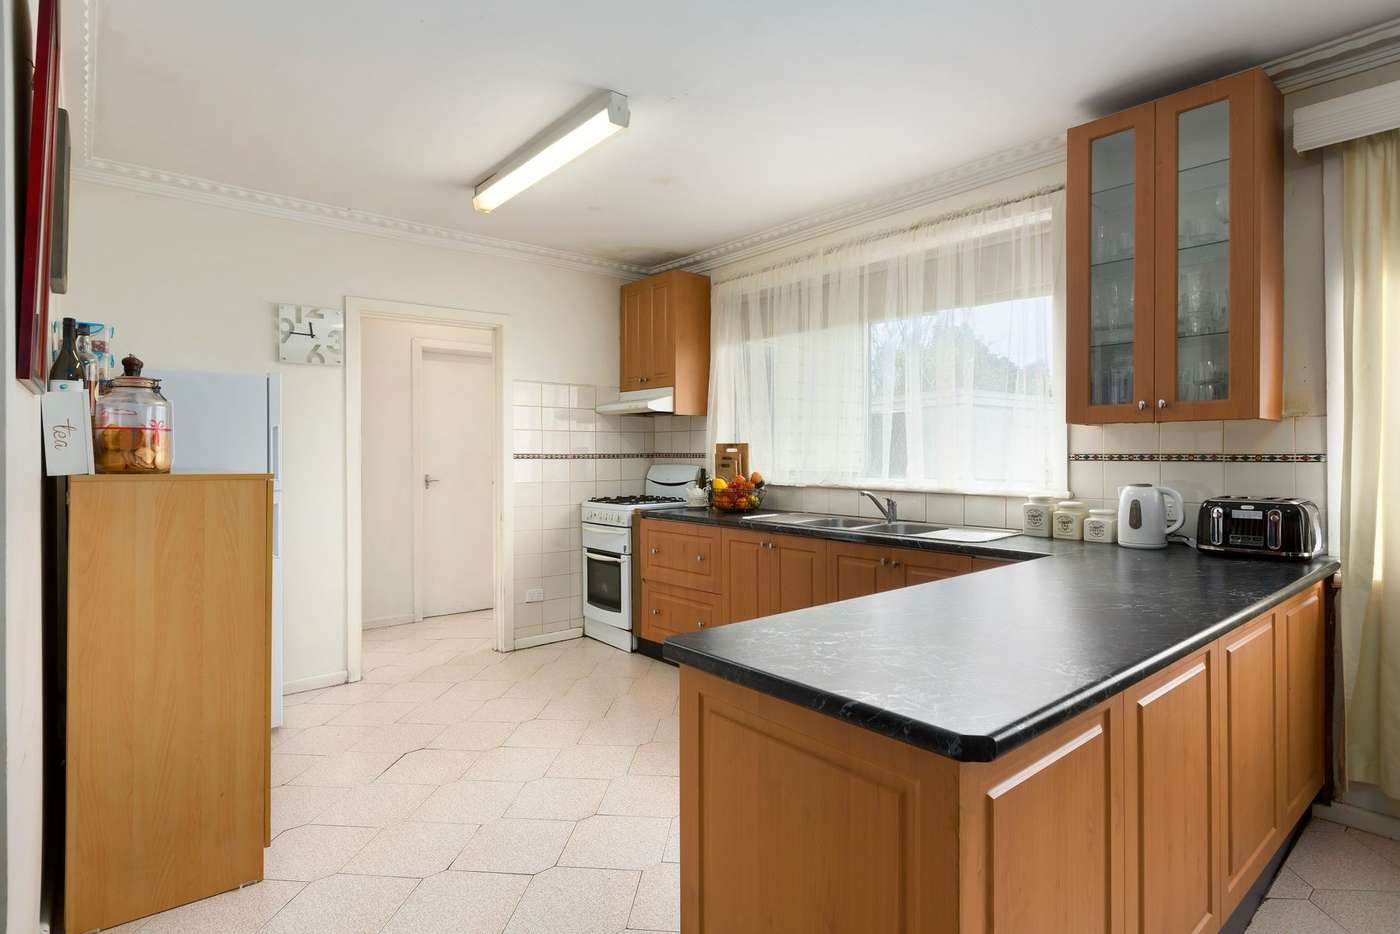 Fifth view of Homely house listing, 44 Andrew Street, Northcote VIC 3070